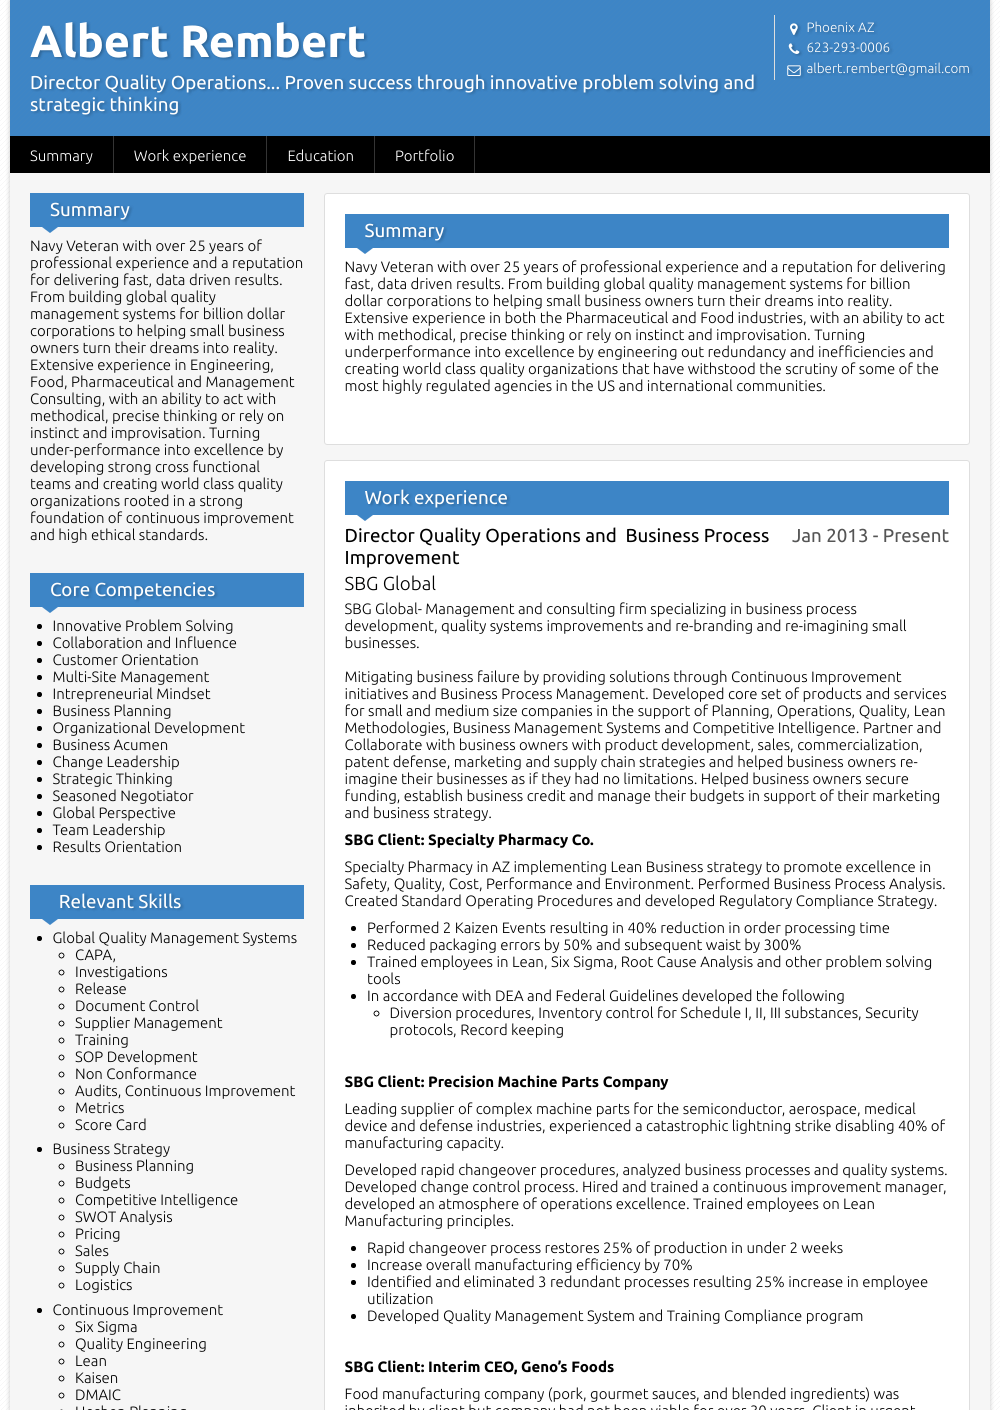 Vice President Operations - Resume Samples & Templates